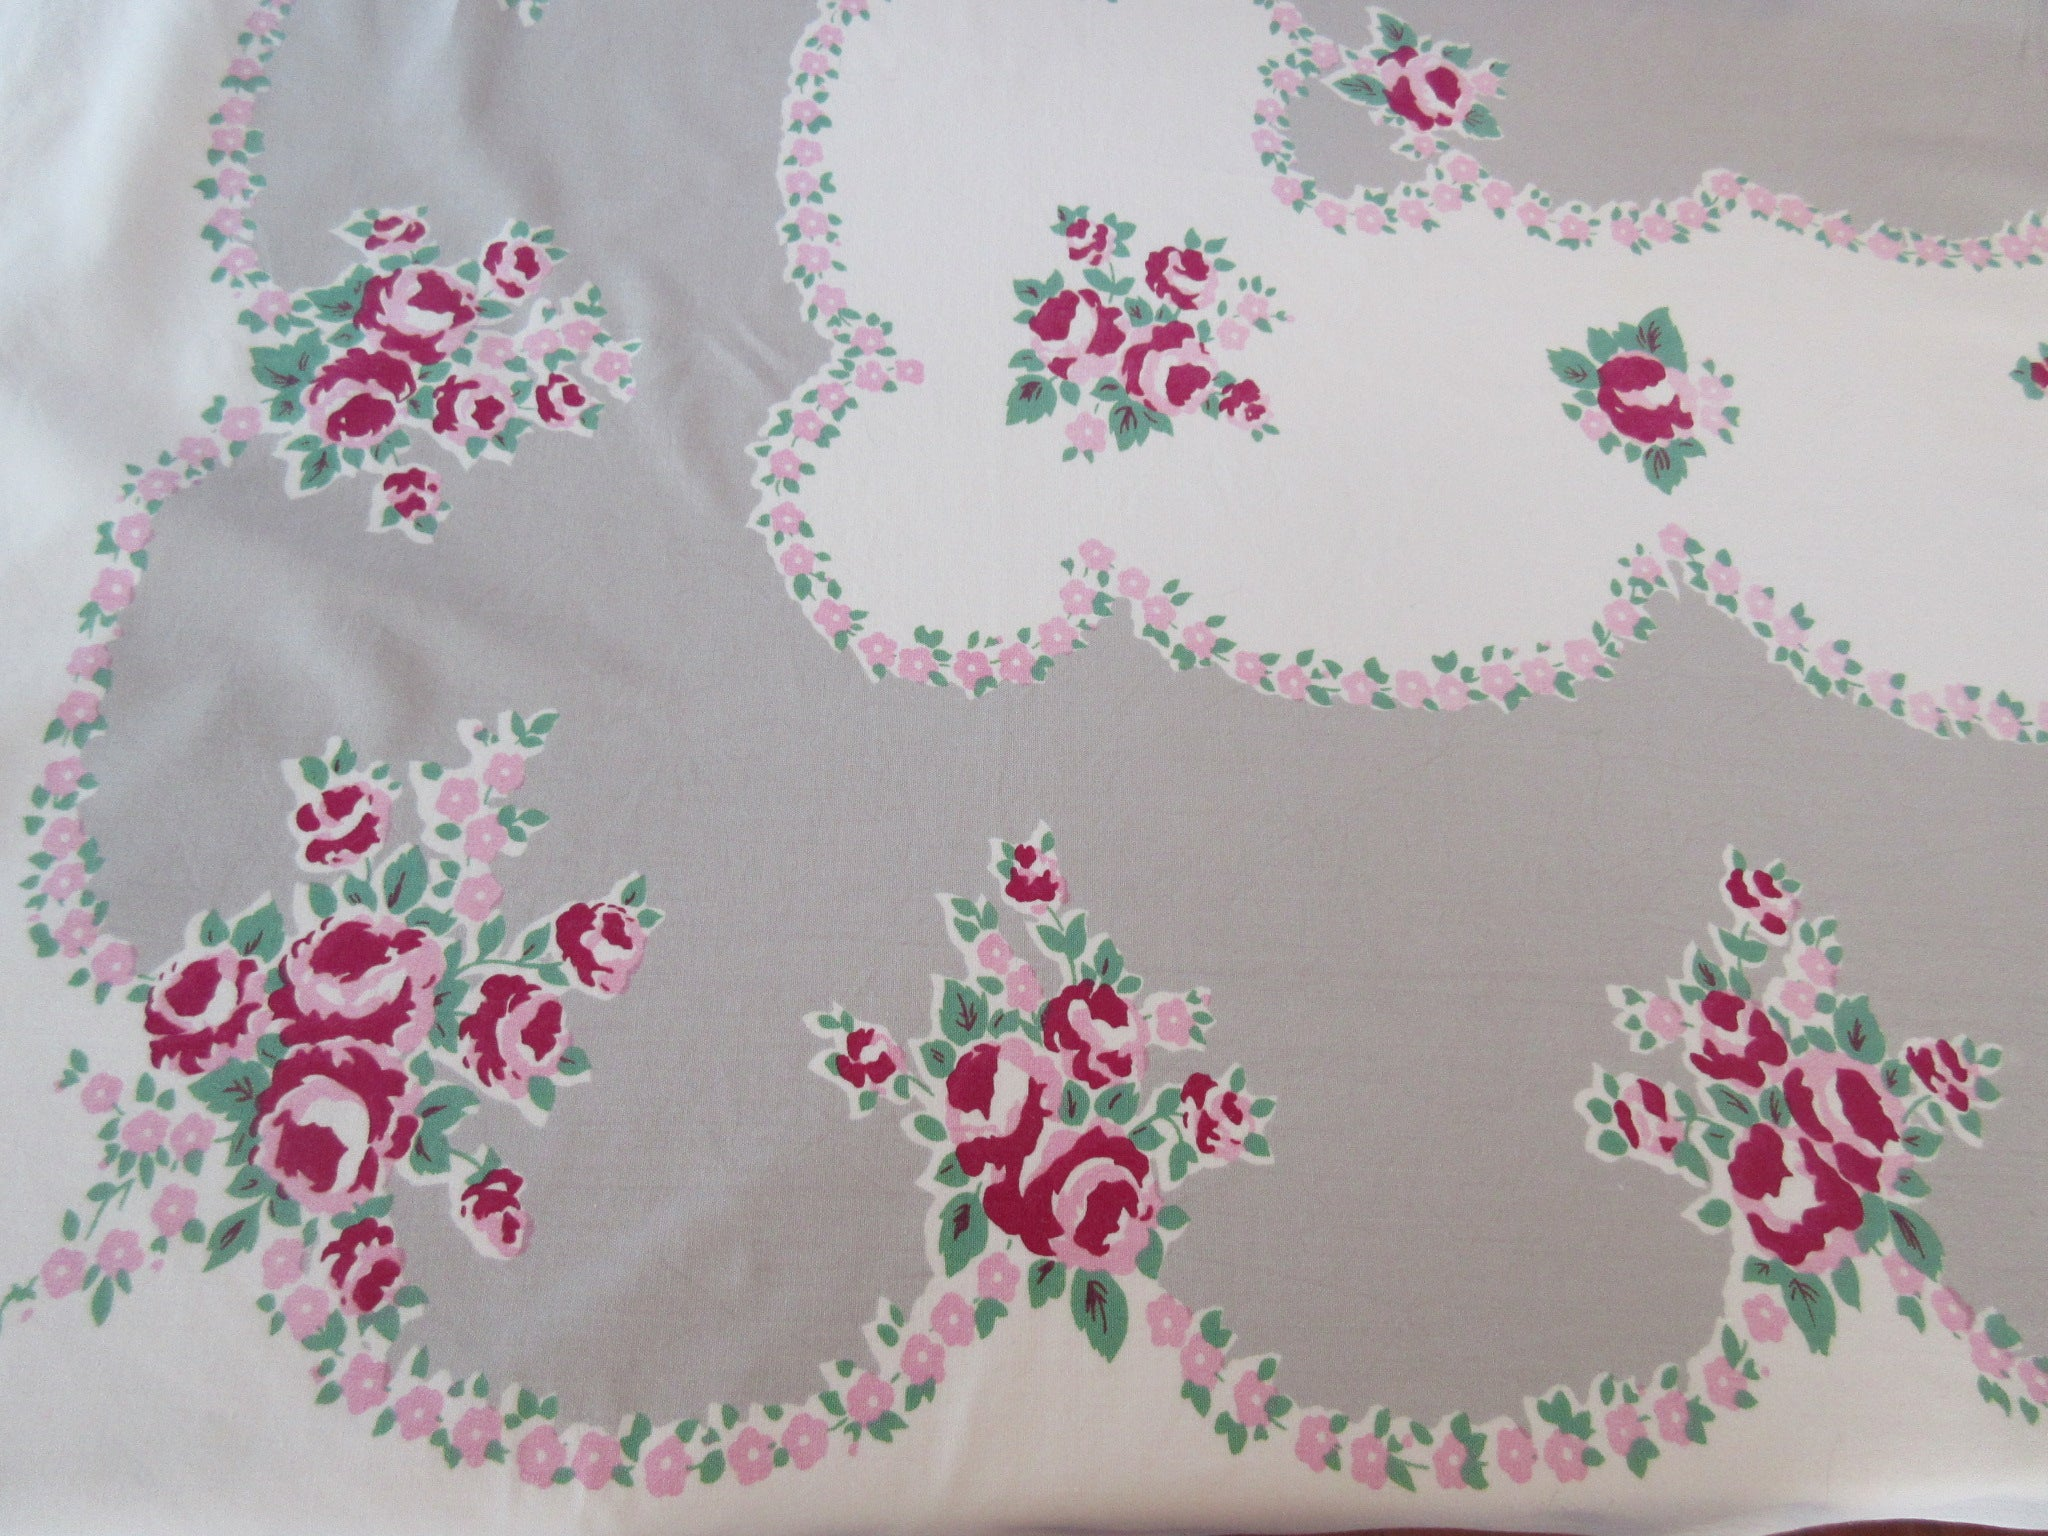 Smudgy Pink Green Roses on Gray Floral Vintage Printed Tablecloth (62 X 52)